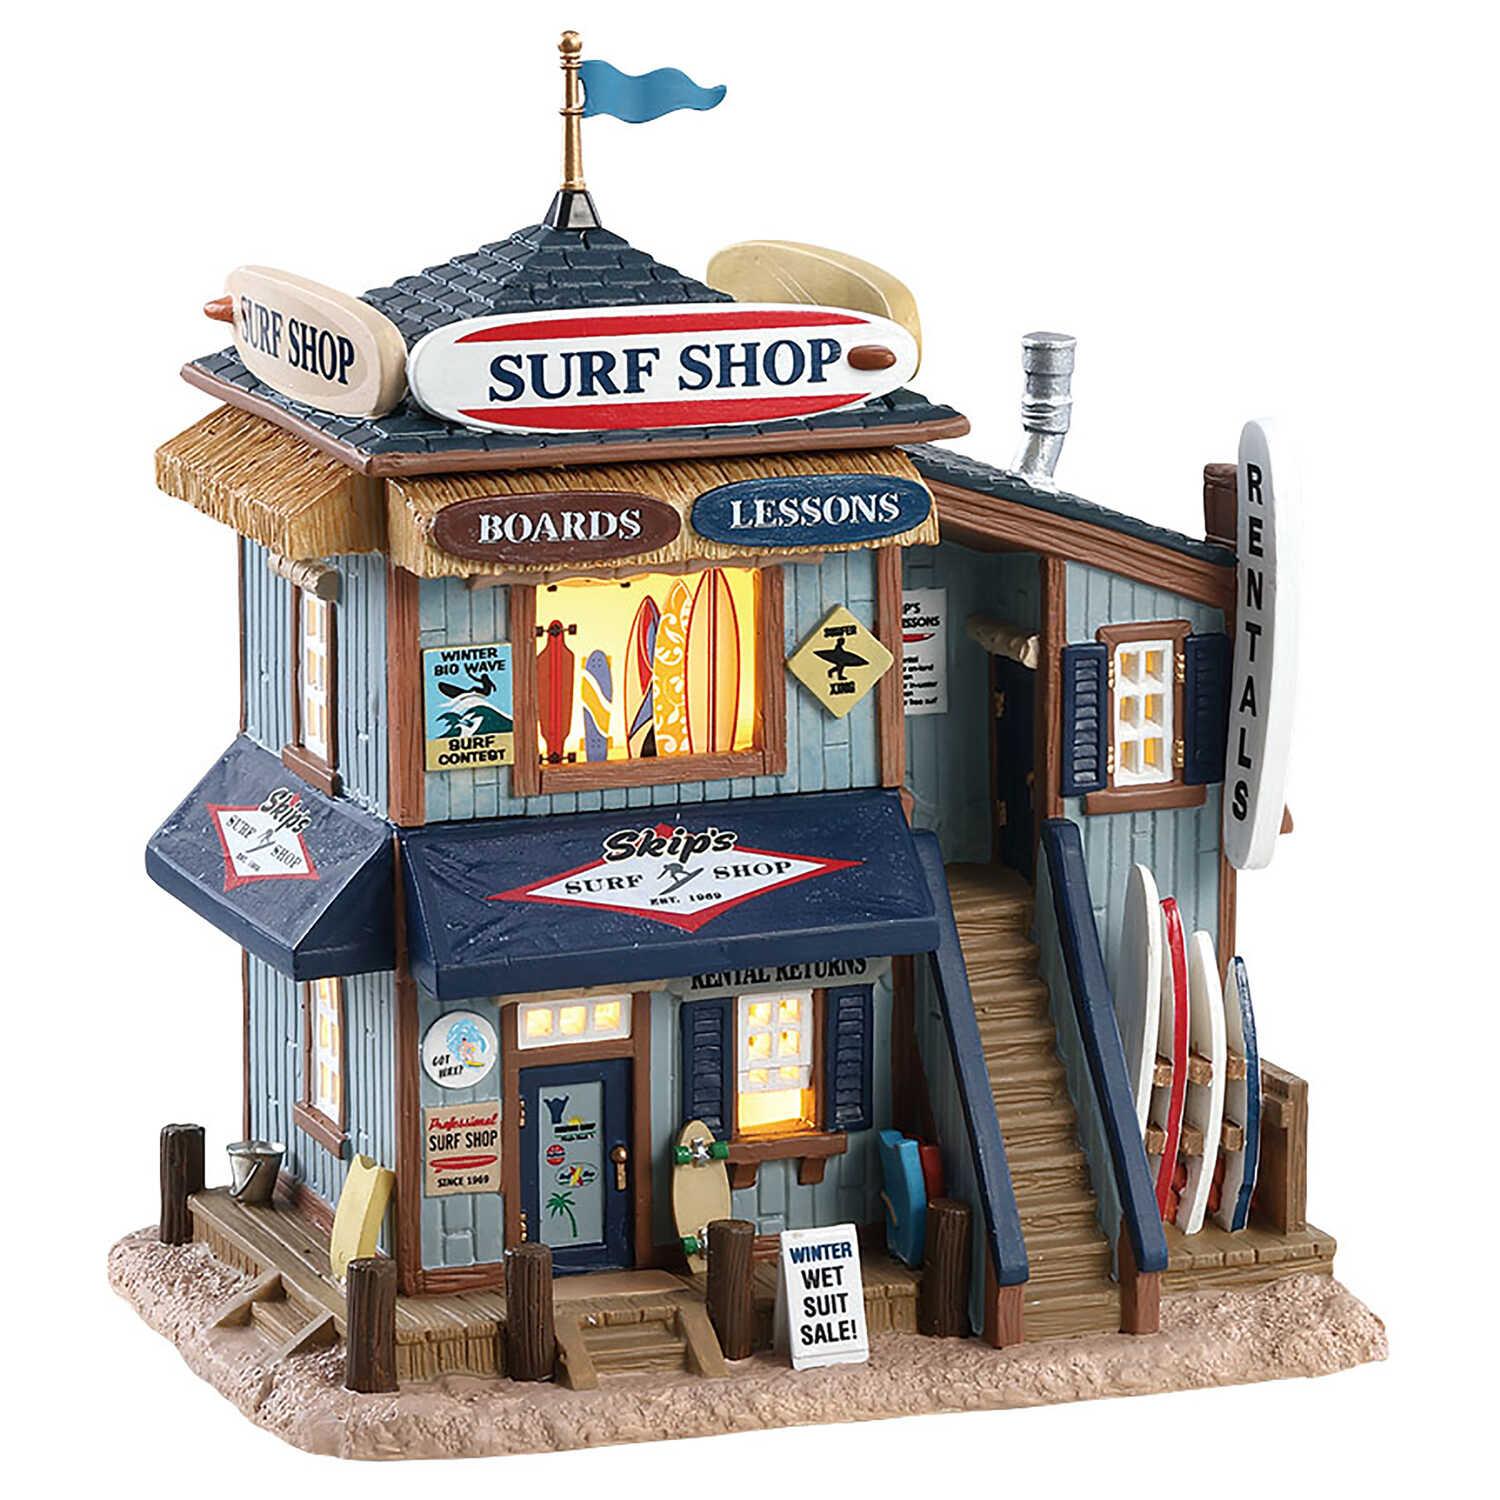 Lemax  Christmas Skip's Surf Shop  Tabletop Decoration  Porcelain  1 pk Multicolored